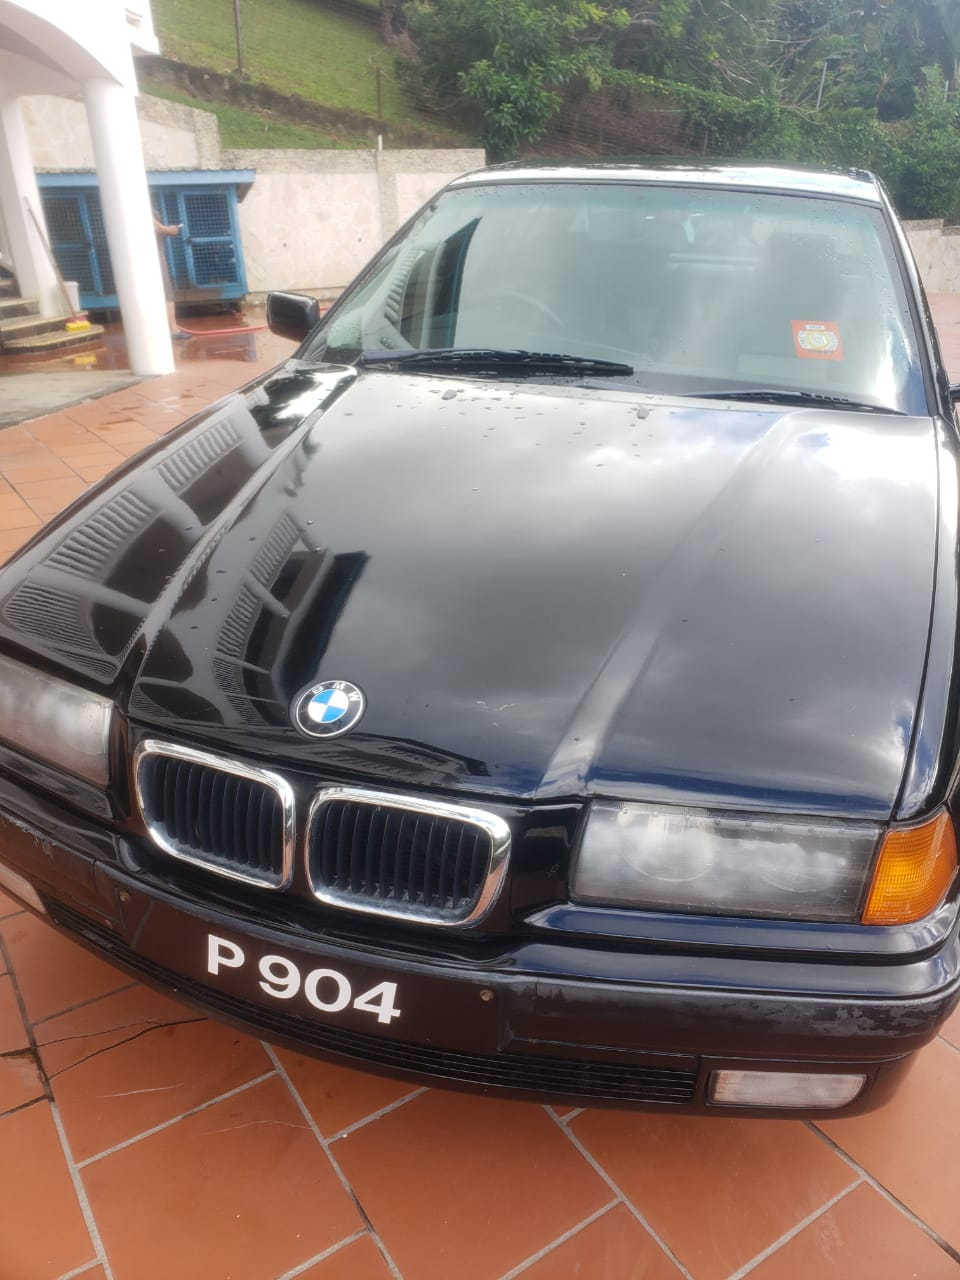 Motor Vehicle for Sale